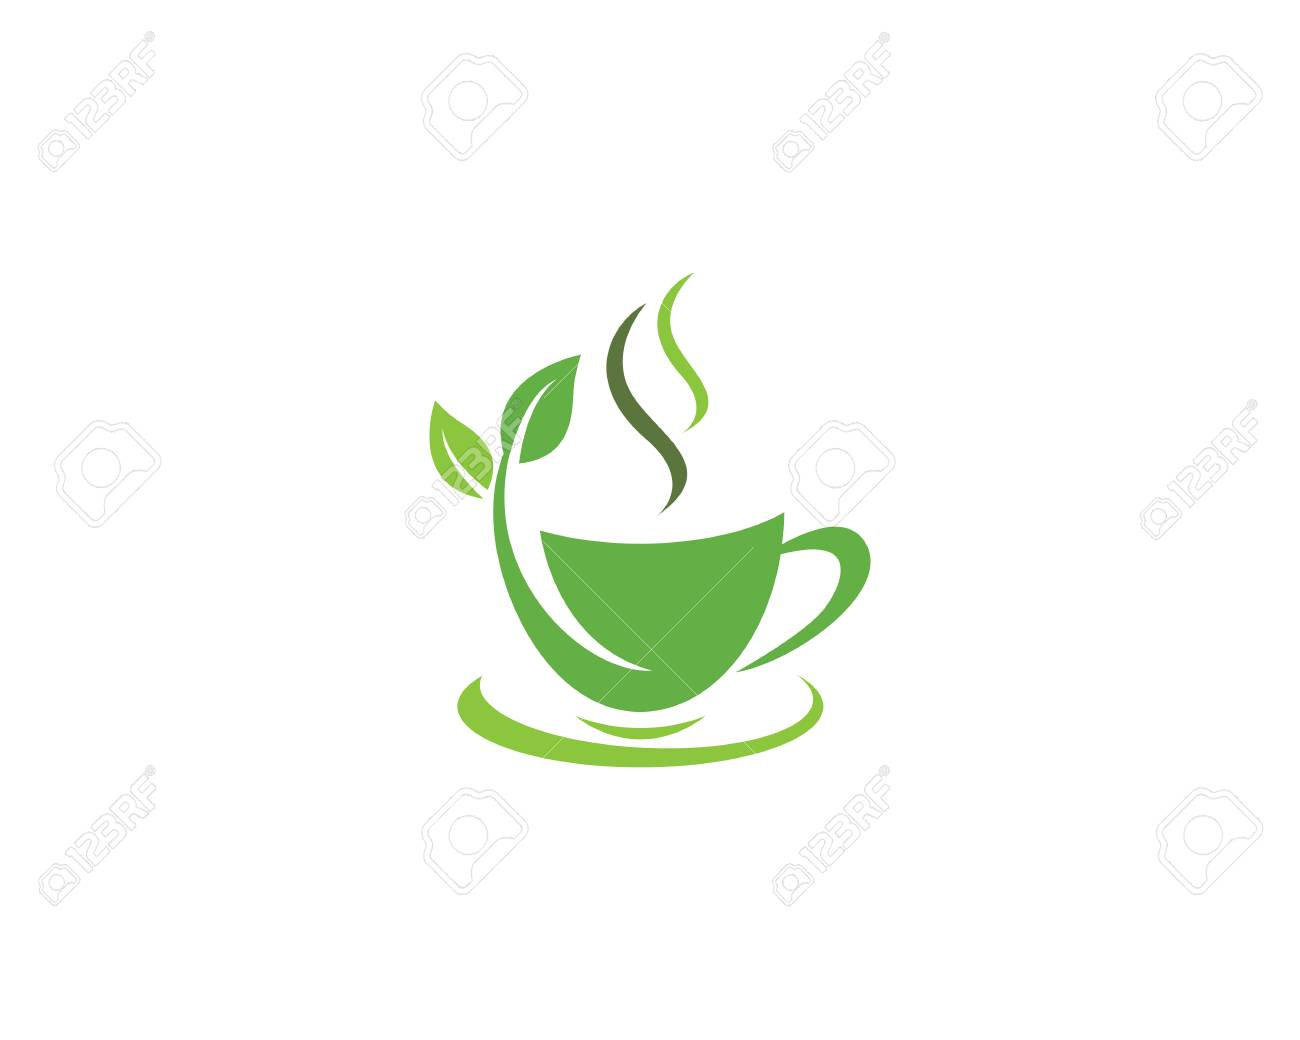 cup of tea vector icon illustration design logo template royalty free cliparts vectors and stock illustration image 95371771 cup of tea vector icon illustration design logo template